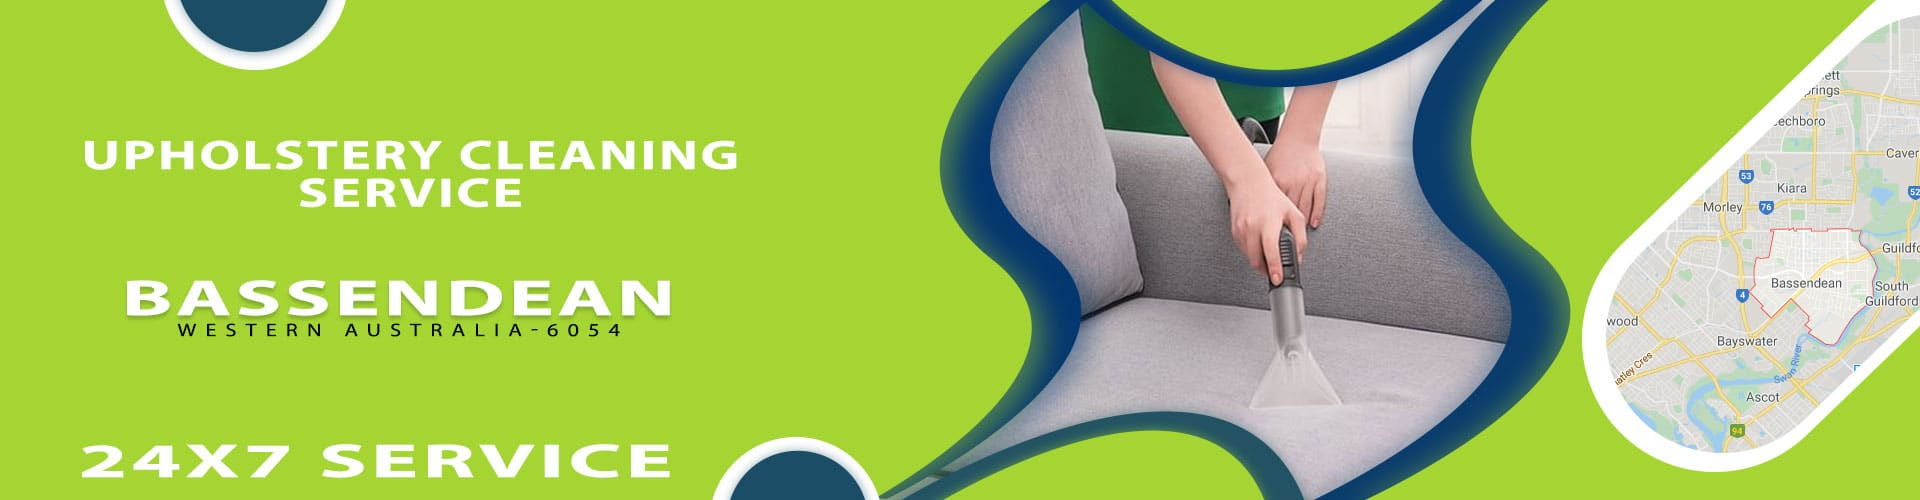 Upholstery Cleaning Bassendean